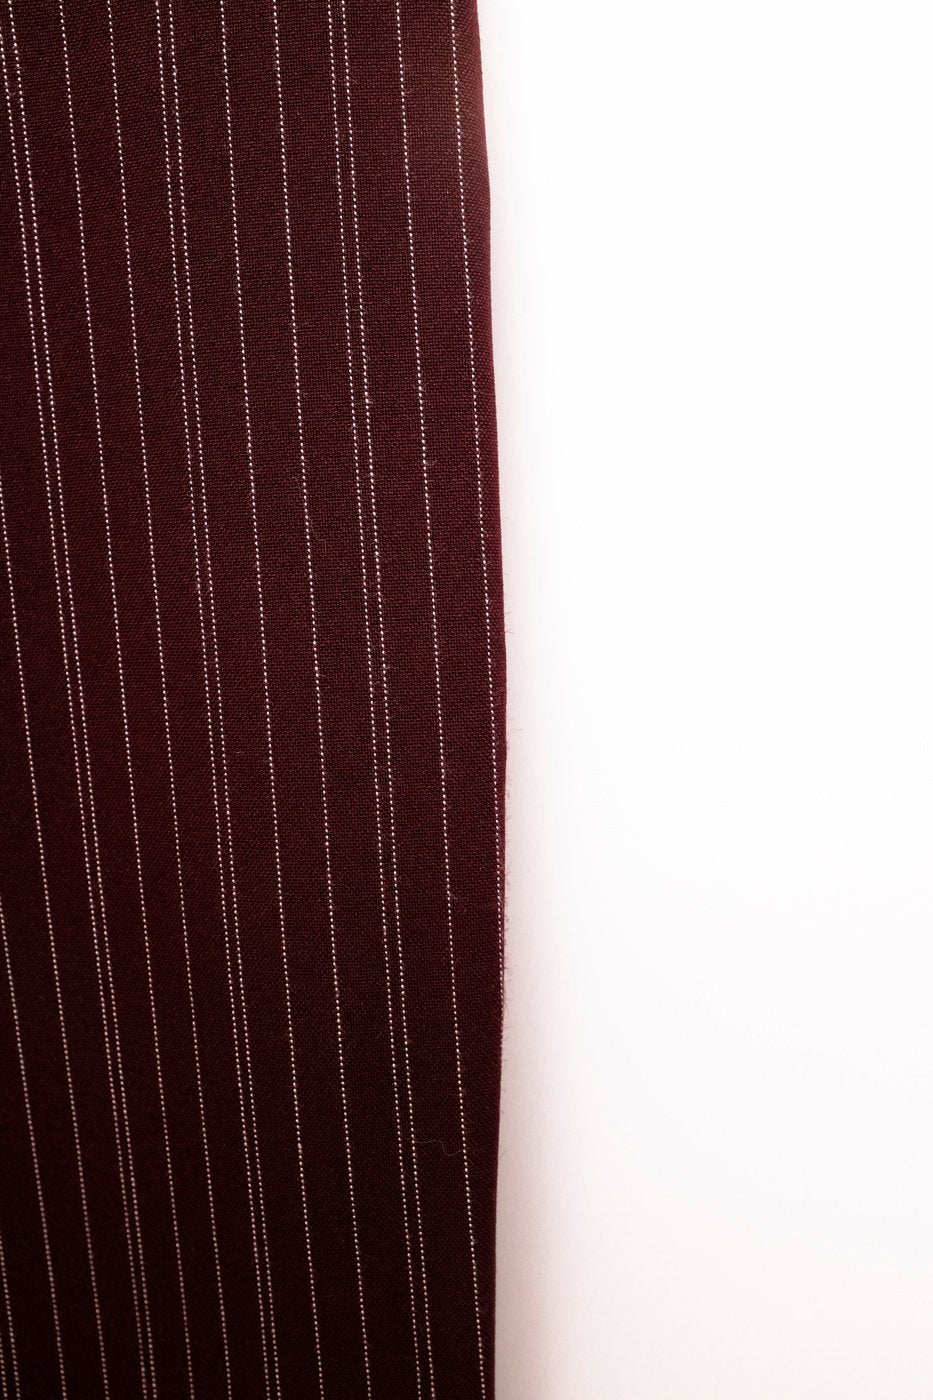 0373_PINSTRIPE CARROT BORDEAUX VINTAGE TROUSERS